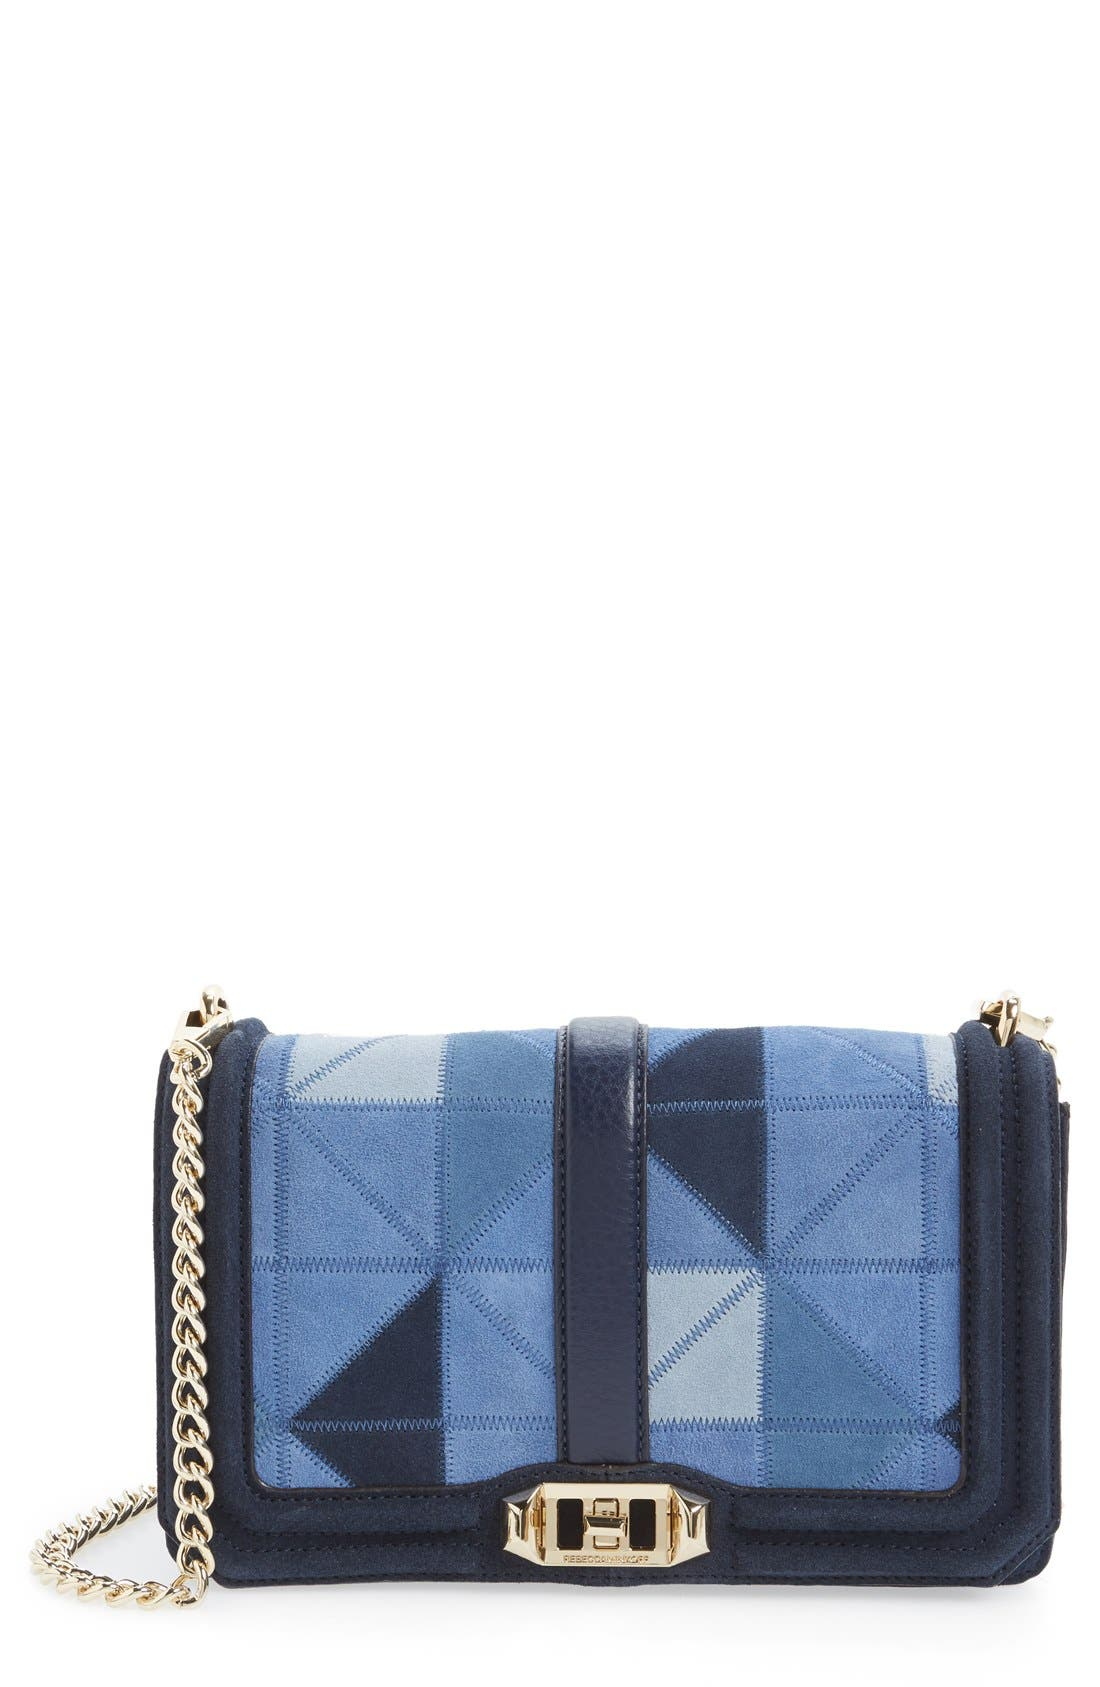 Main Image - Rebecca Minkoff 'Love' Patchwork Leather Crossbody Bag